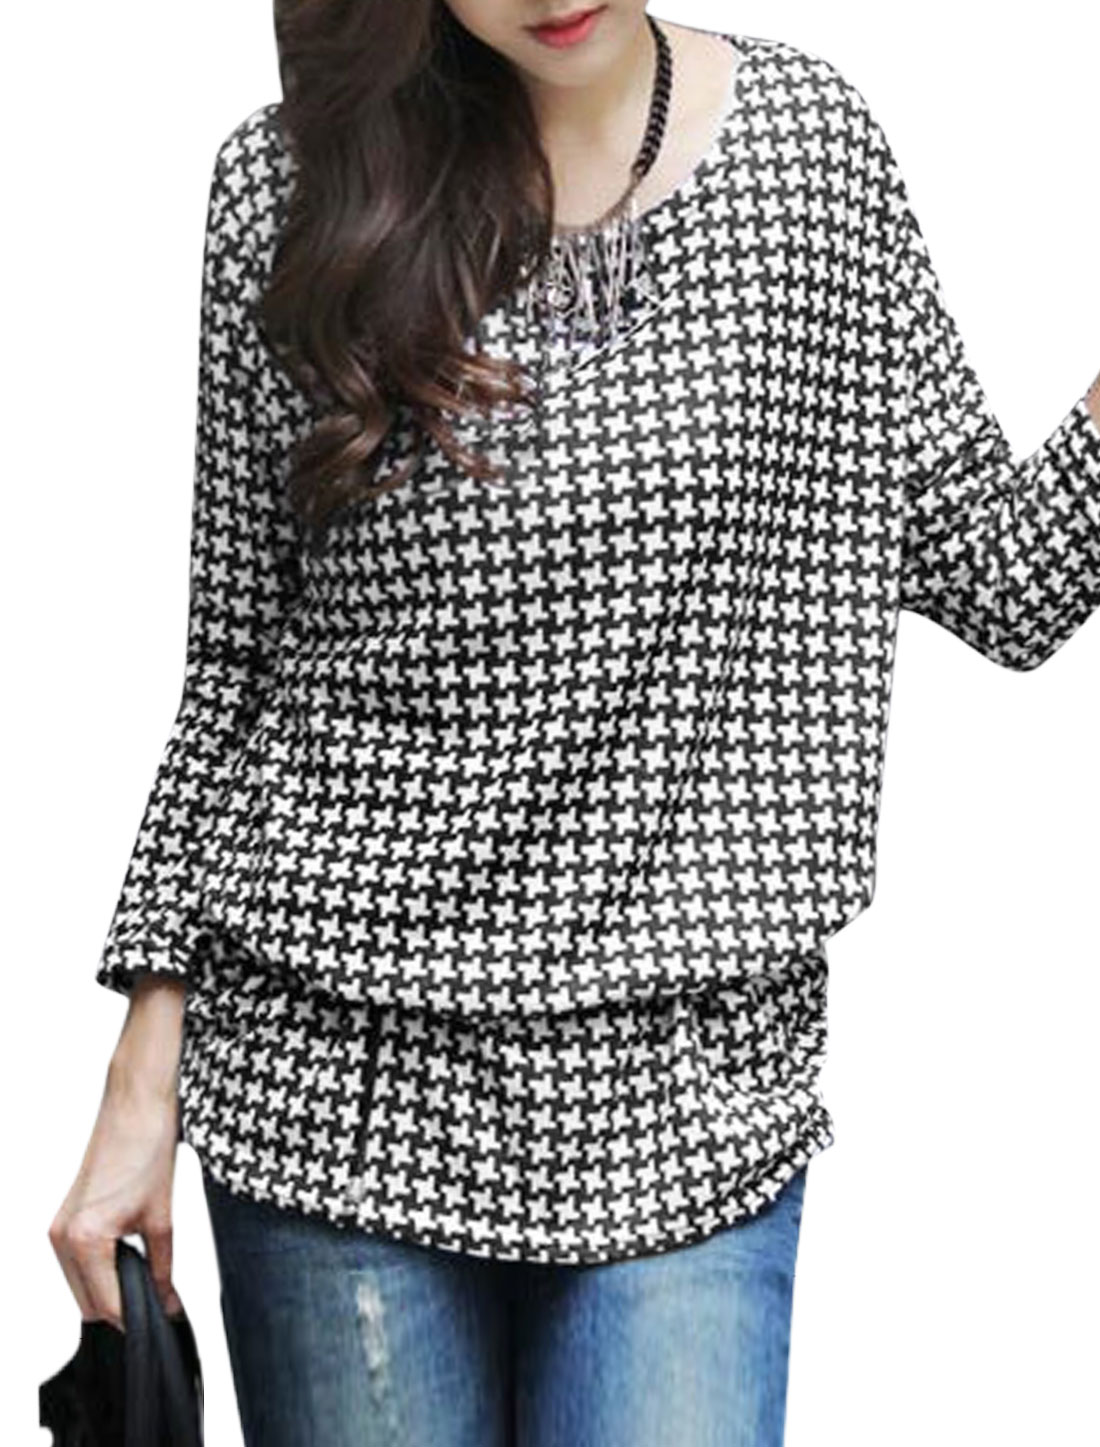 Women Long Sleeve Houndstooth Pattern Tunic Knit Top Black White XS